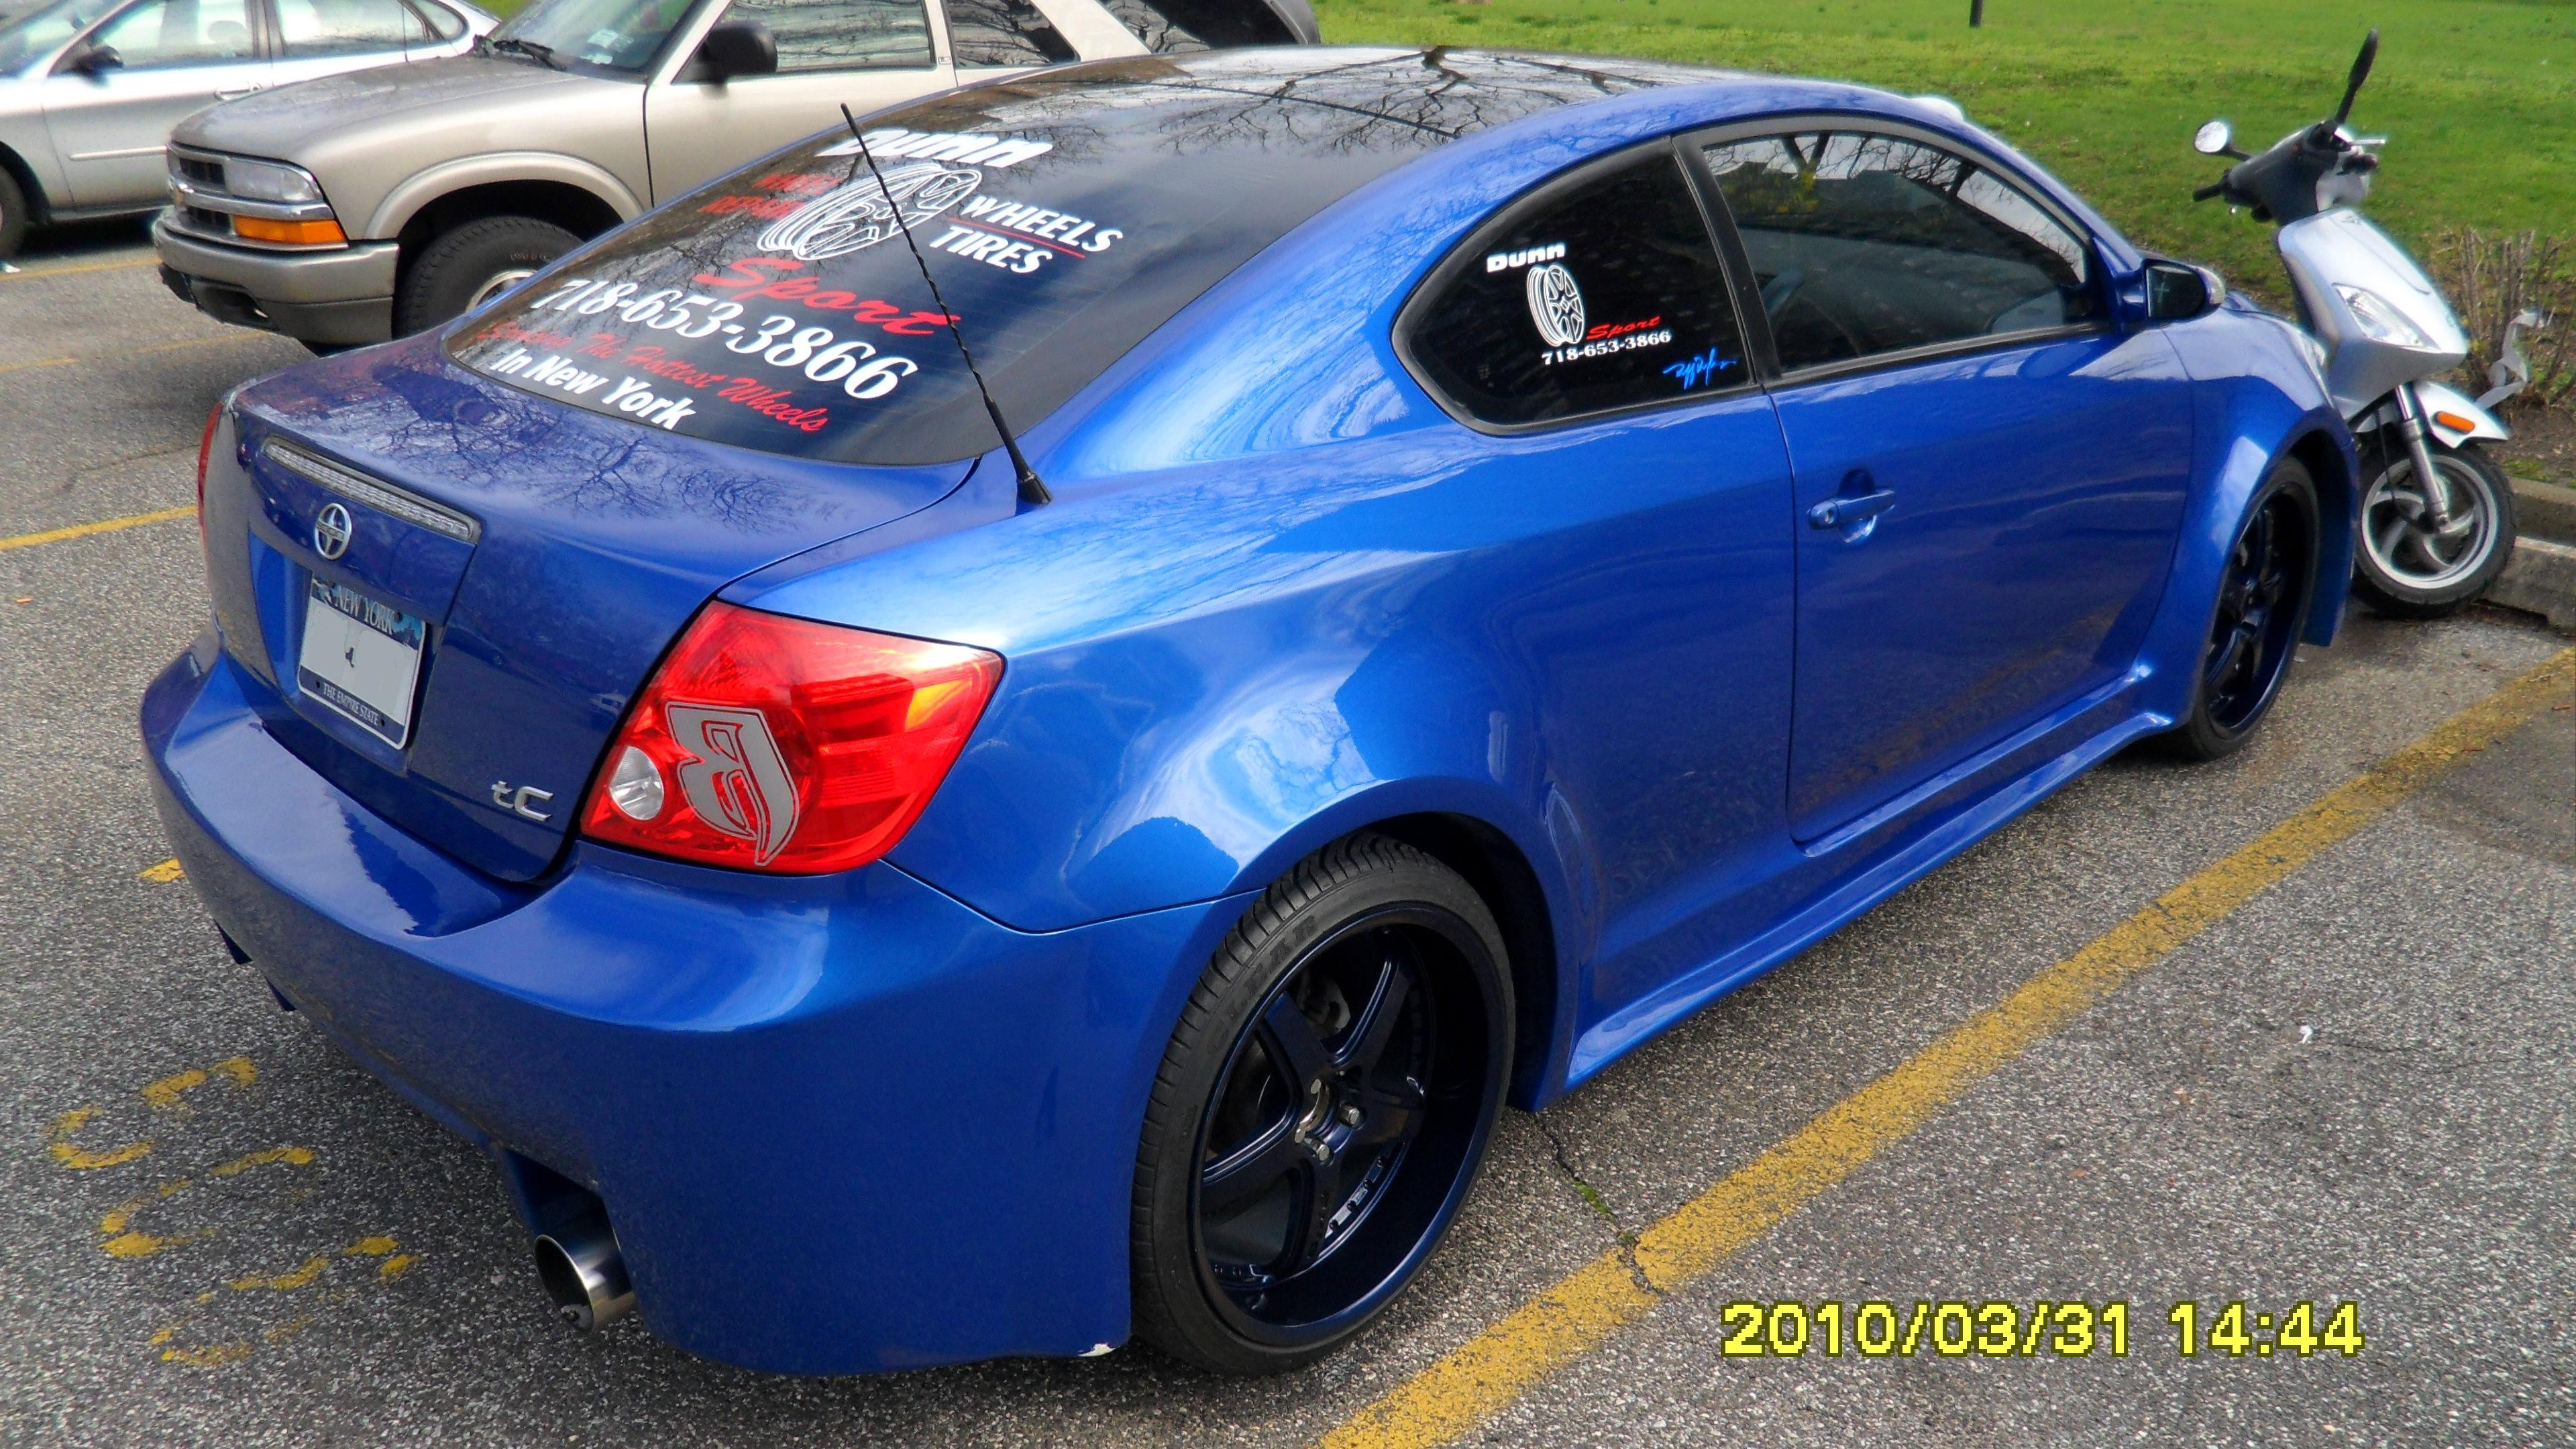 BX_tC_BEEZO 2007 Scion tC 9973022